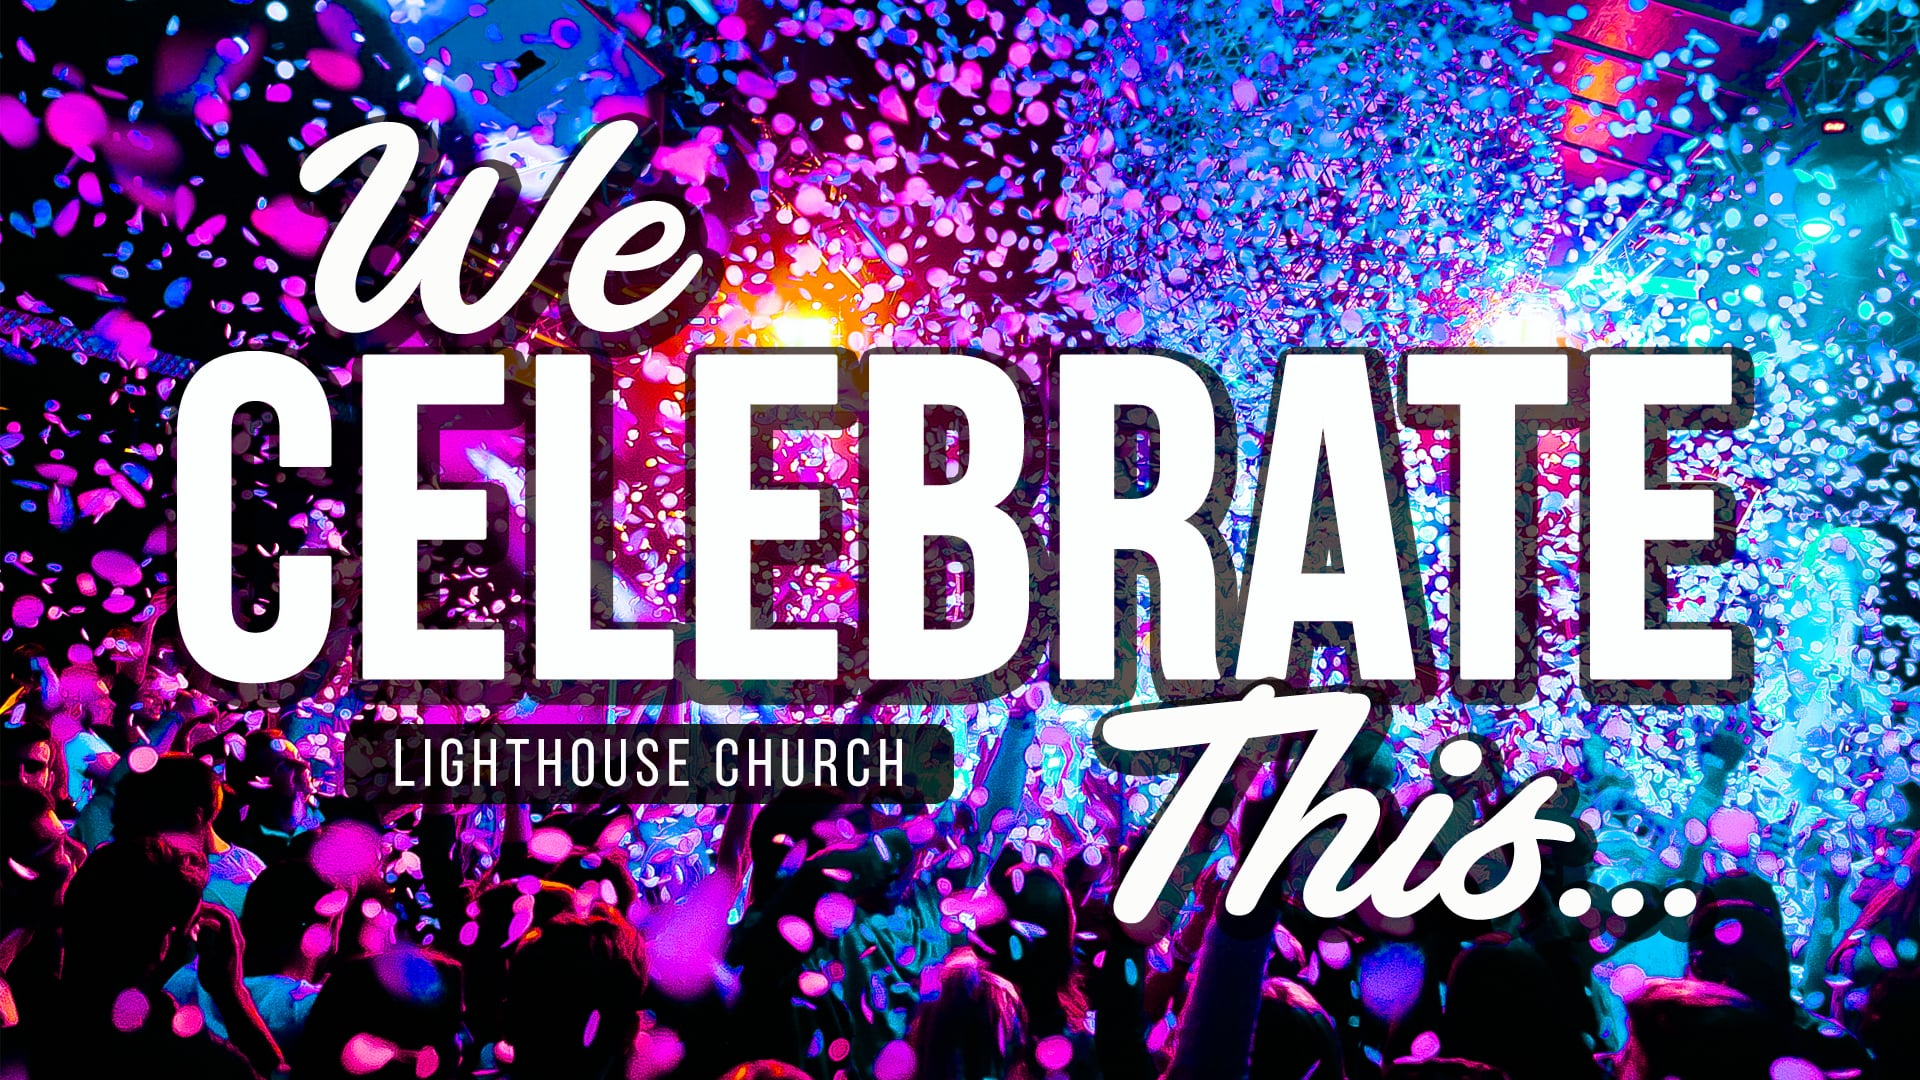 We Celebrate This - Part 1 - Relationships